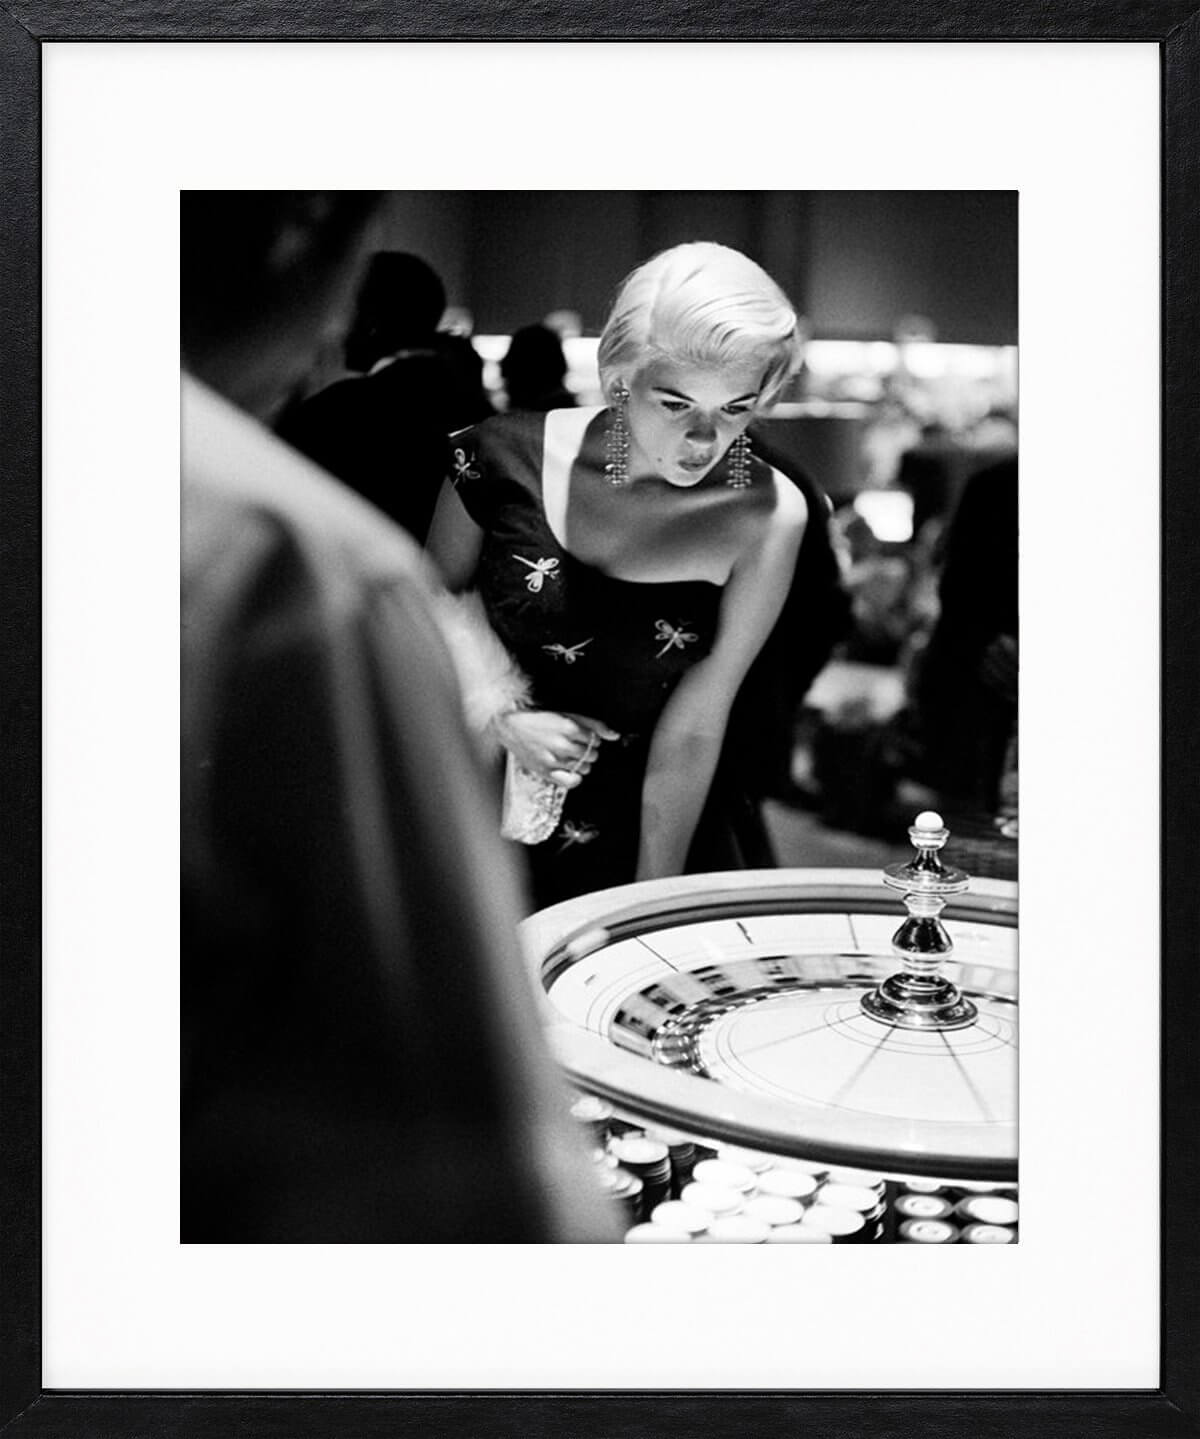 Frank Worth: Jayne Mansfield Plays Roulette in Vegas